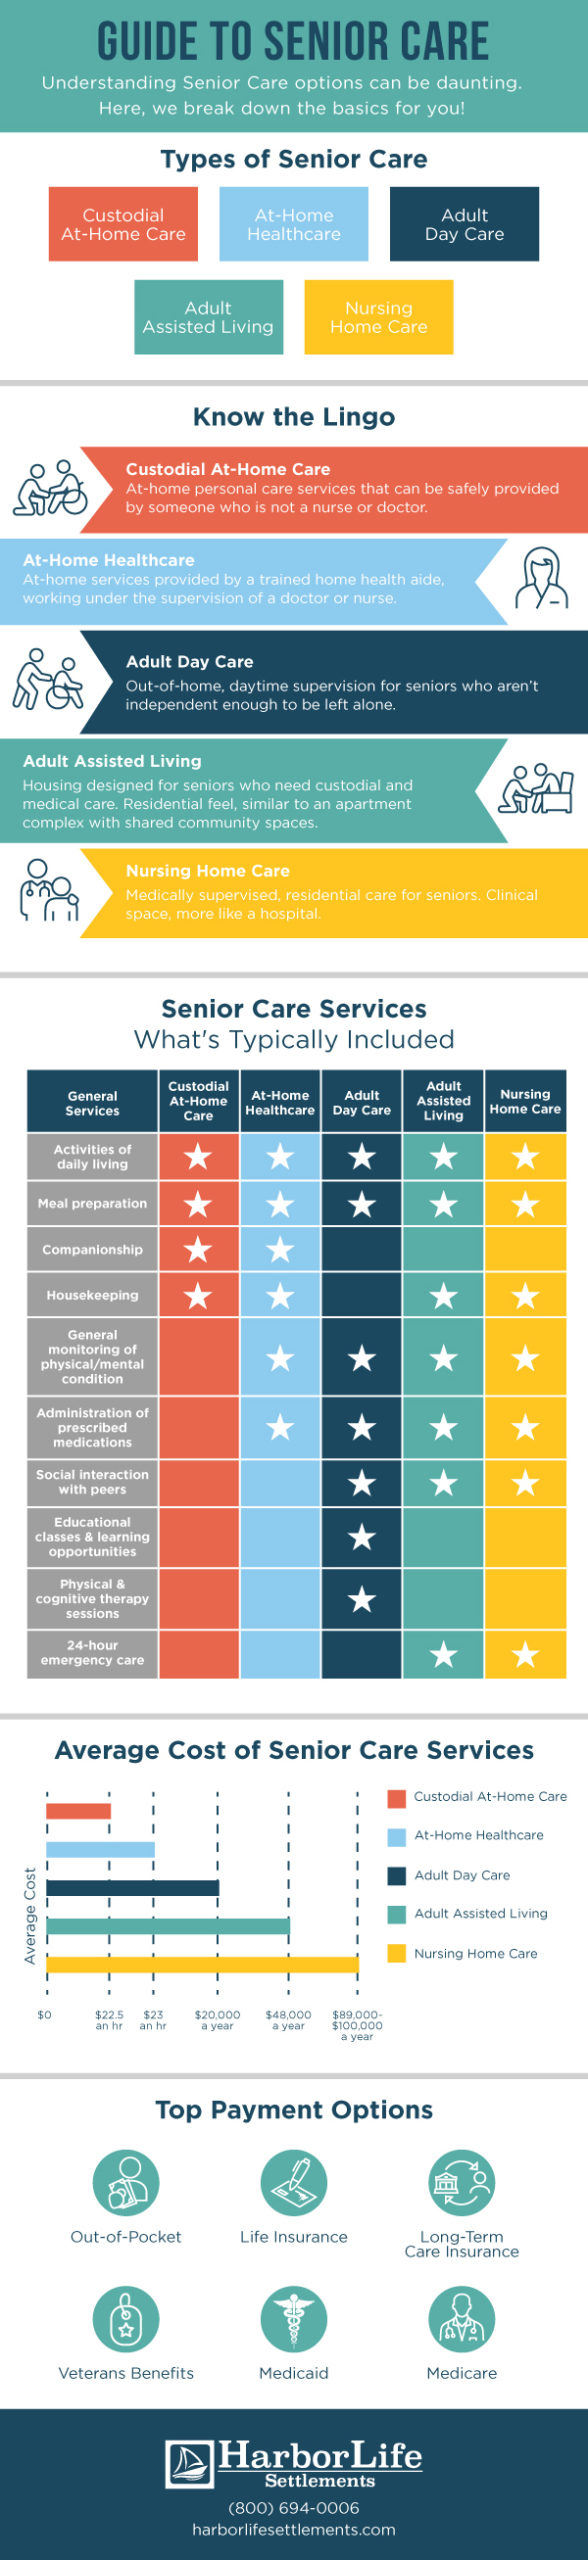 infographic showing the best ways to save and pay for long term care